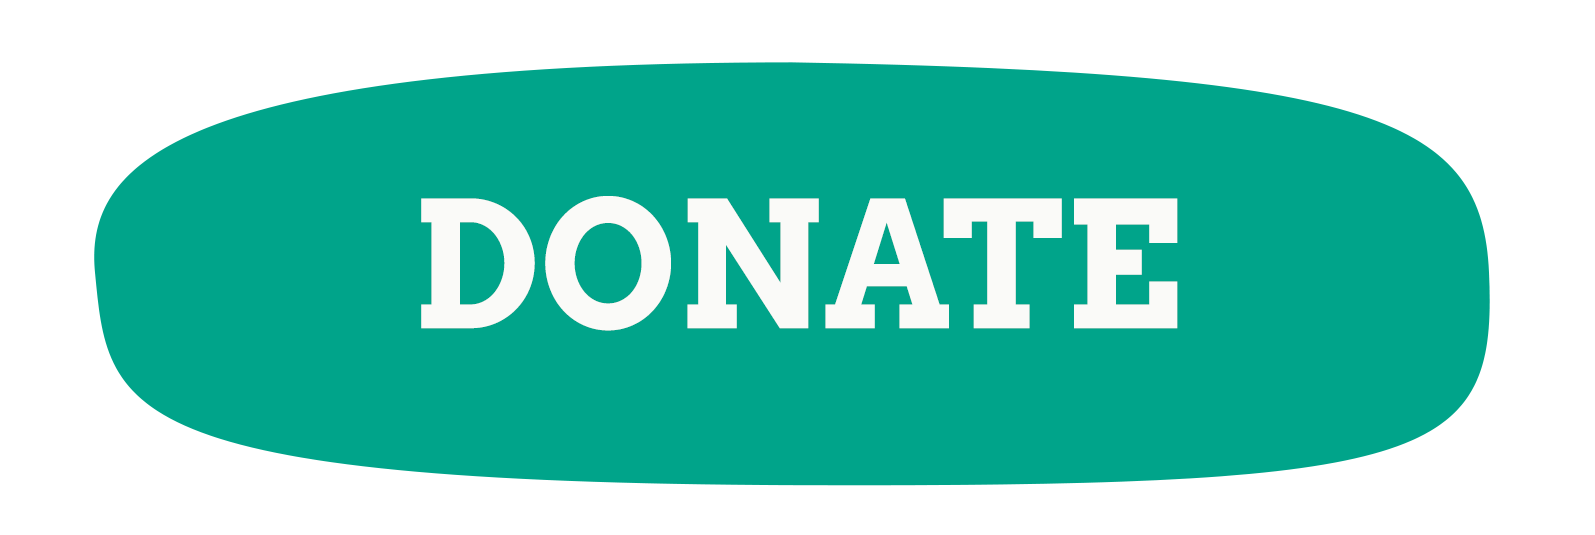 Donate_button_CFA.png